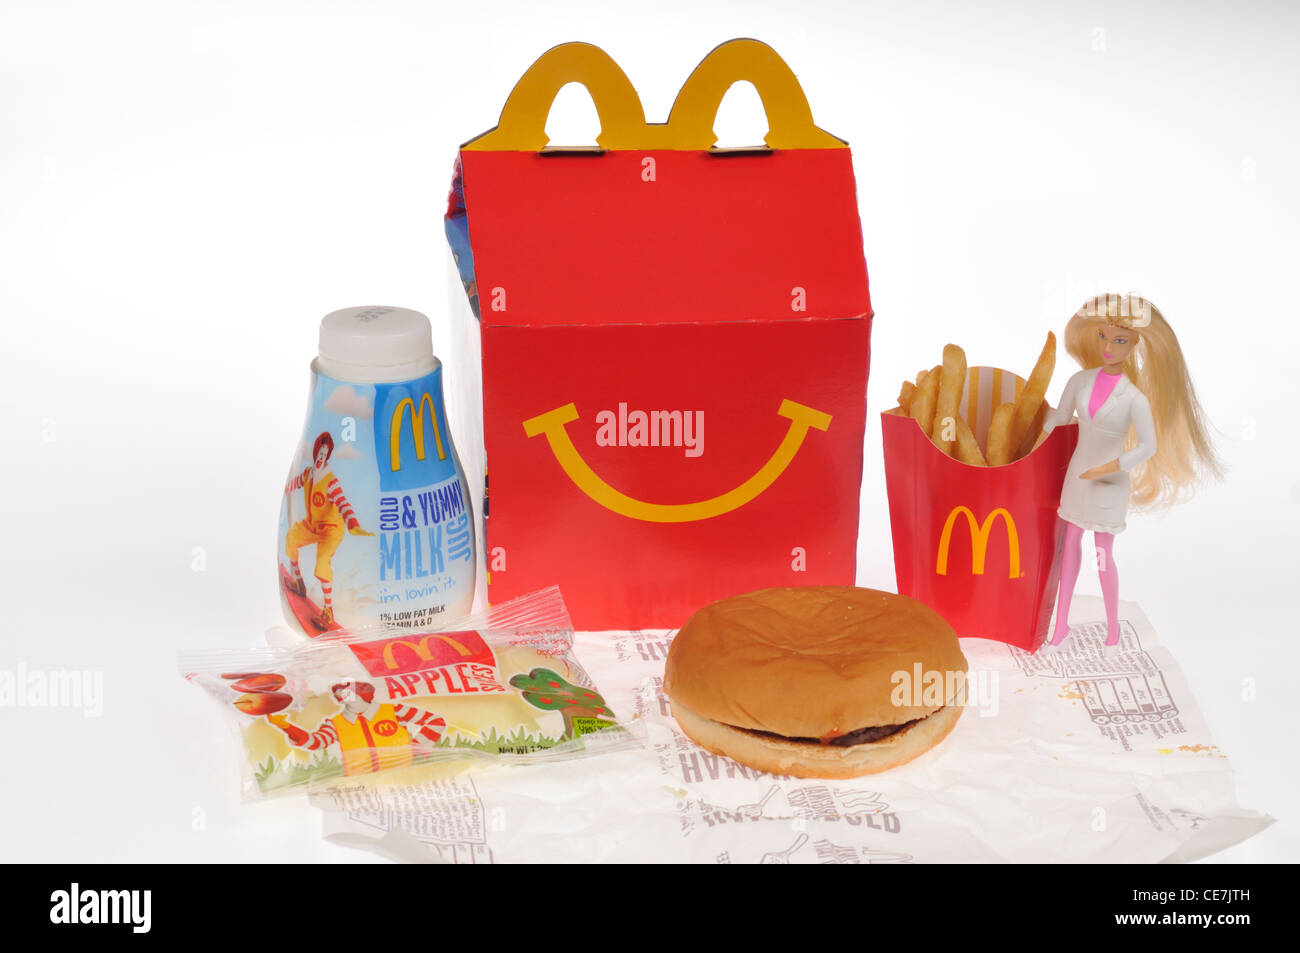 McDonald's Happy meal box with a burger, chips, milk and apple dippers  and a Barbie doll toy on white background - Stock Image